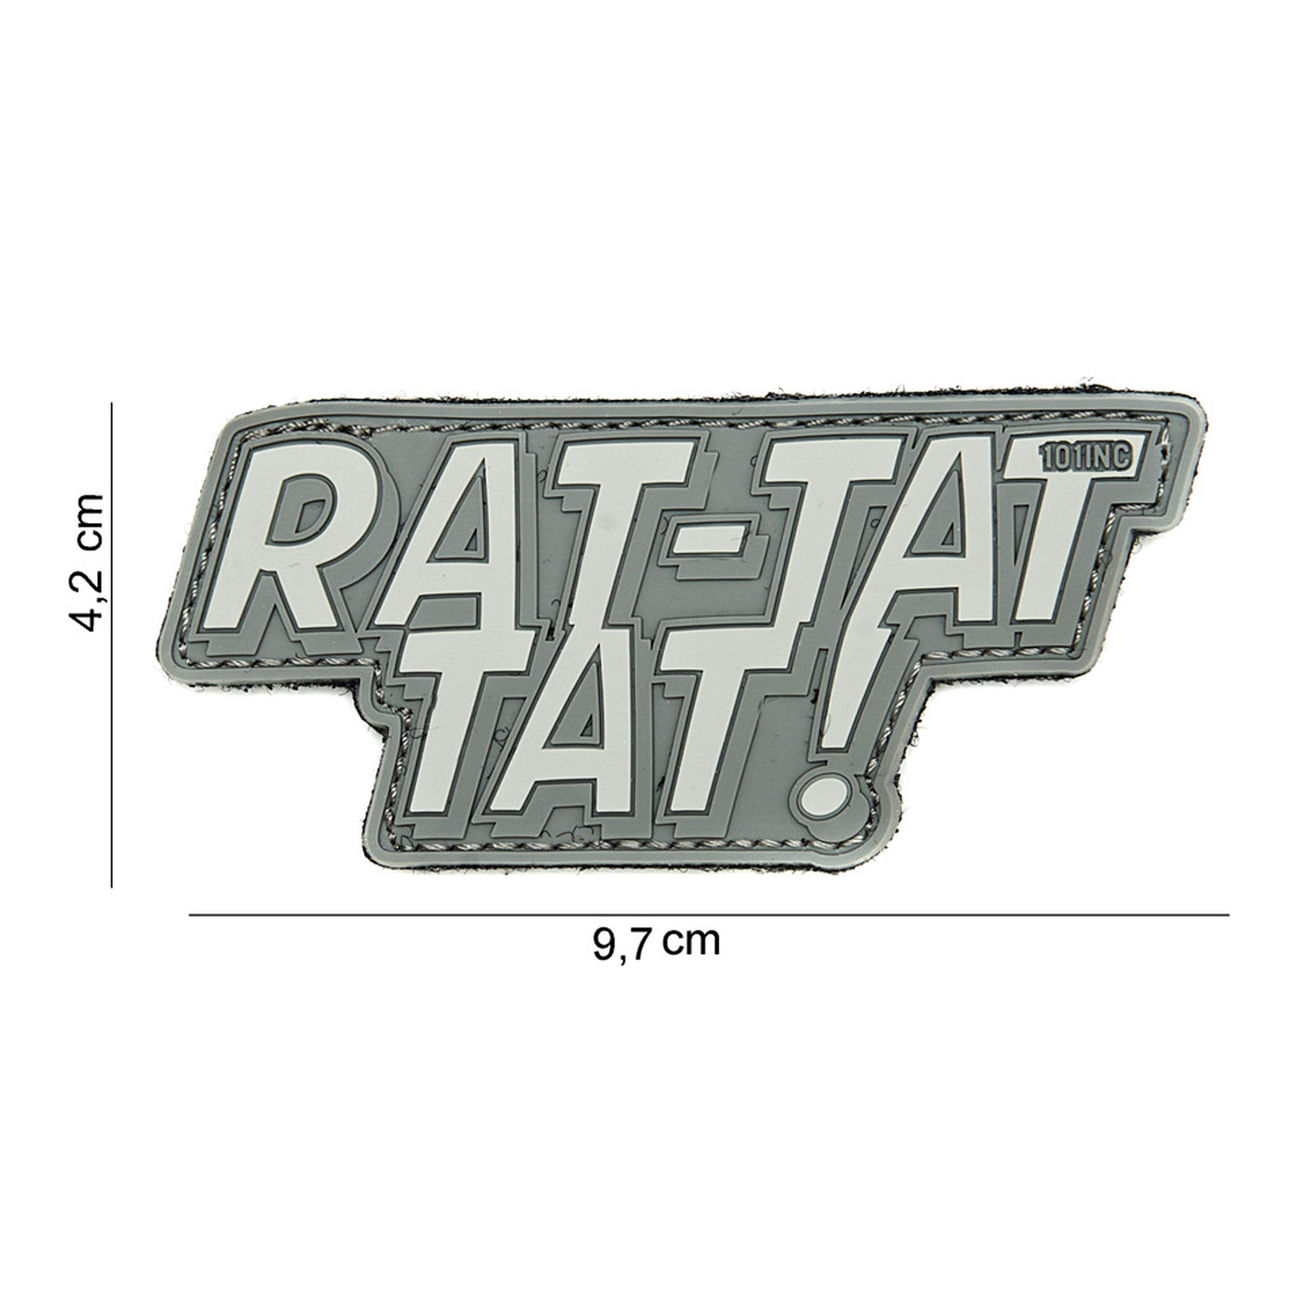 101 INC. 3D Rubber Patch Rat-tat tat grau 0